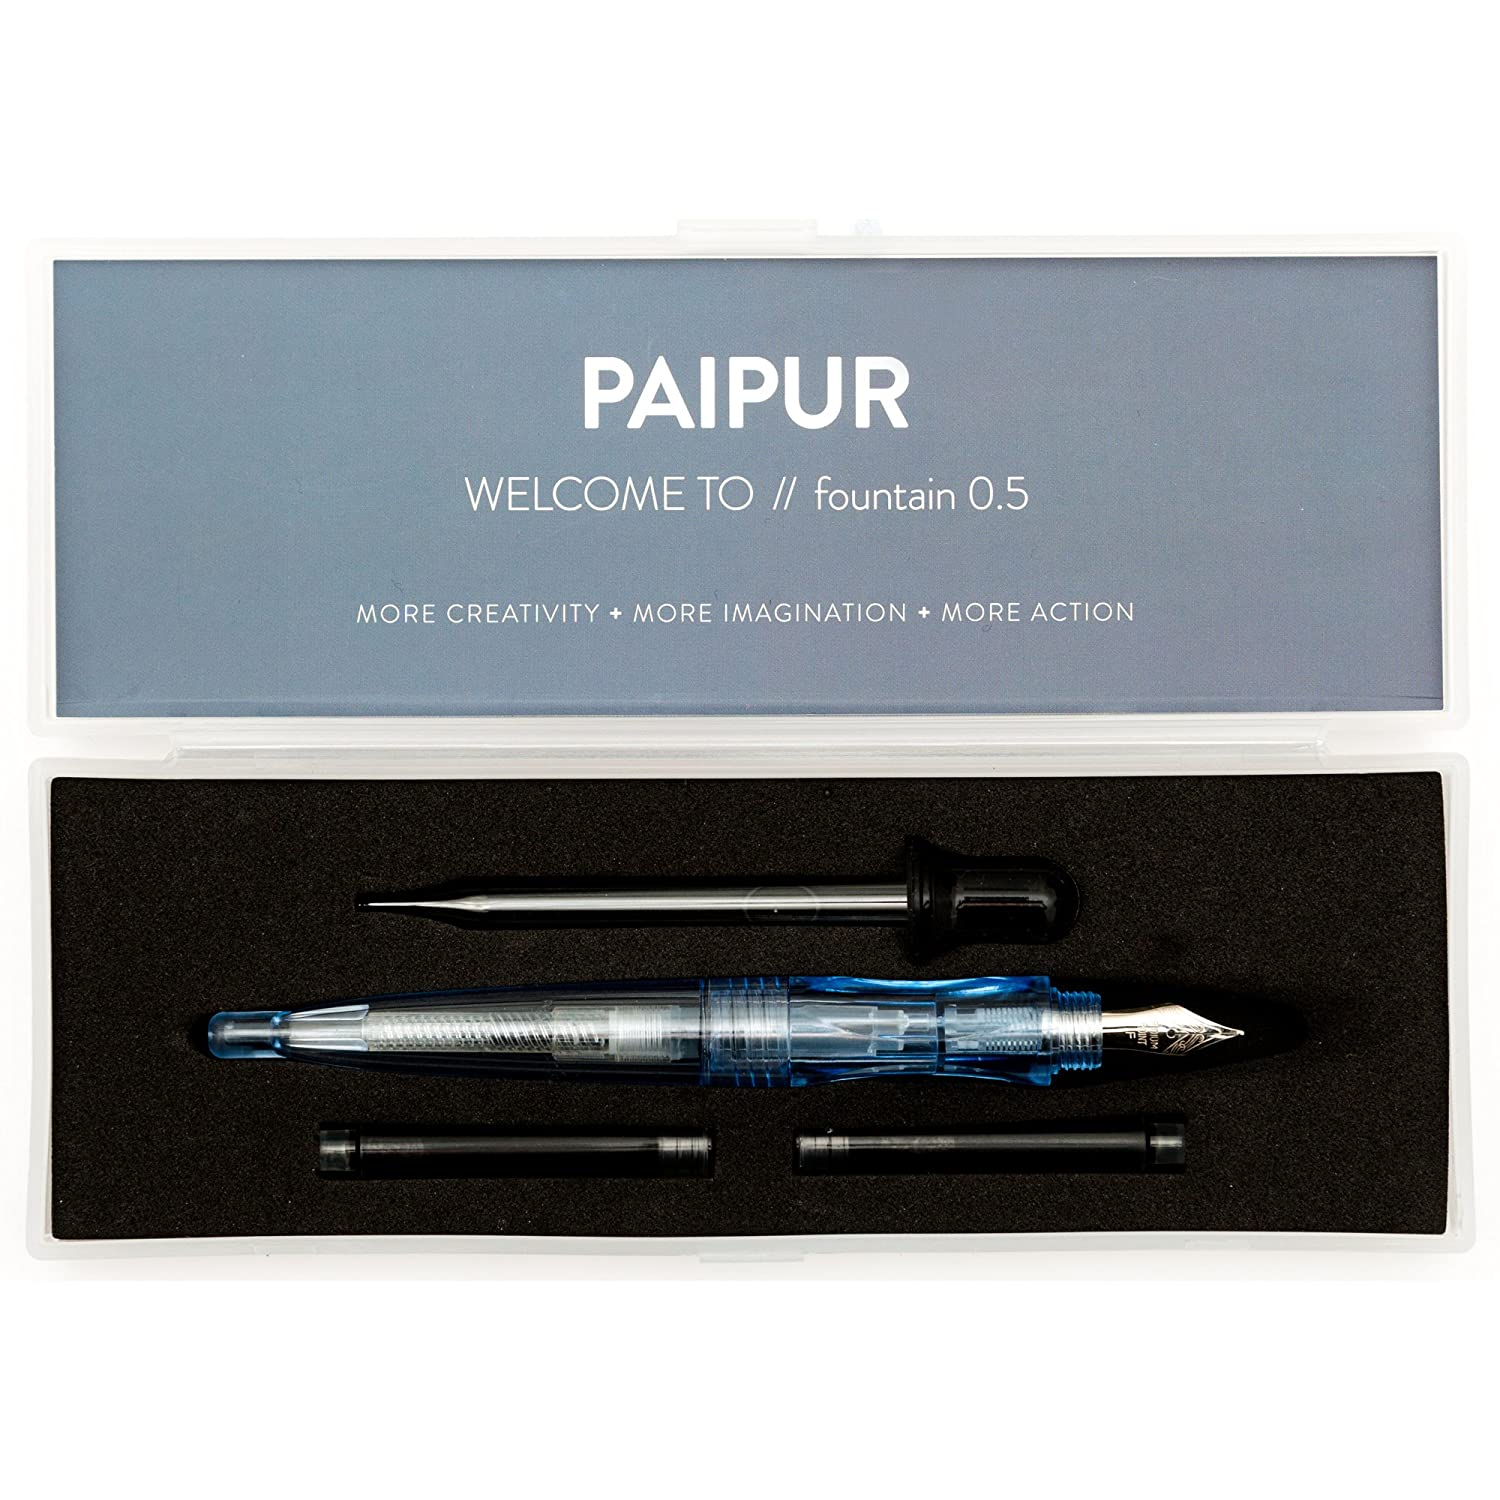 Fountain Pen by PAIPUR - Stainless Steel 0.5mm Medium NIB - Best for Smooth Flowing Writing - with 2 Cartridges, Ink Converter and Ink Dropper - Stylish Transparent Design in Gift Presentation Box